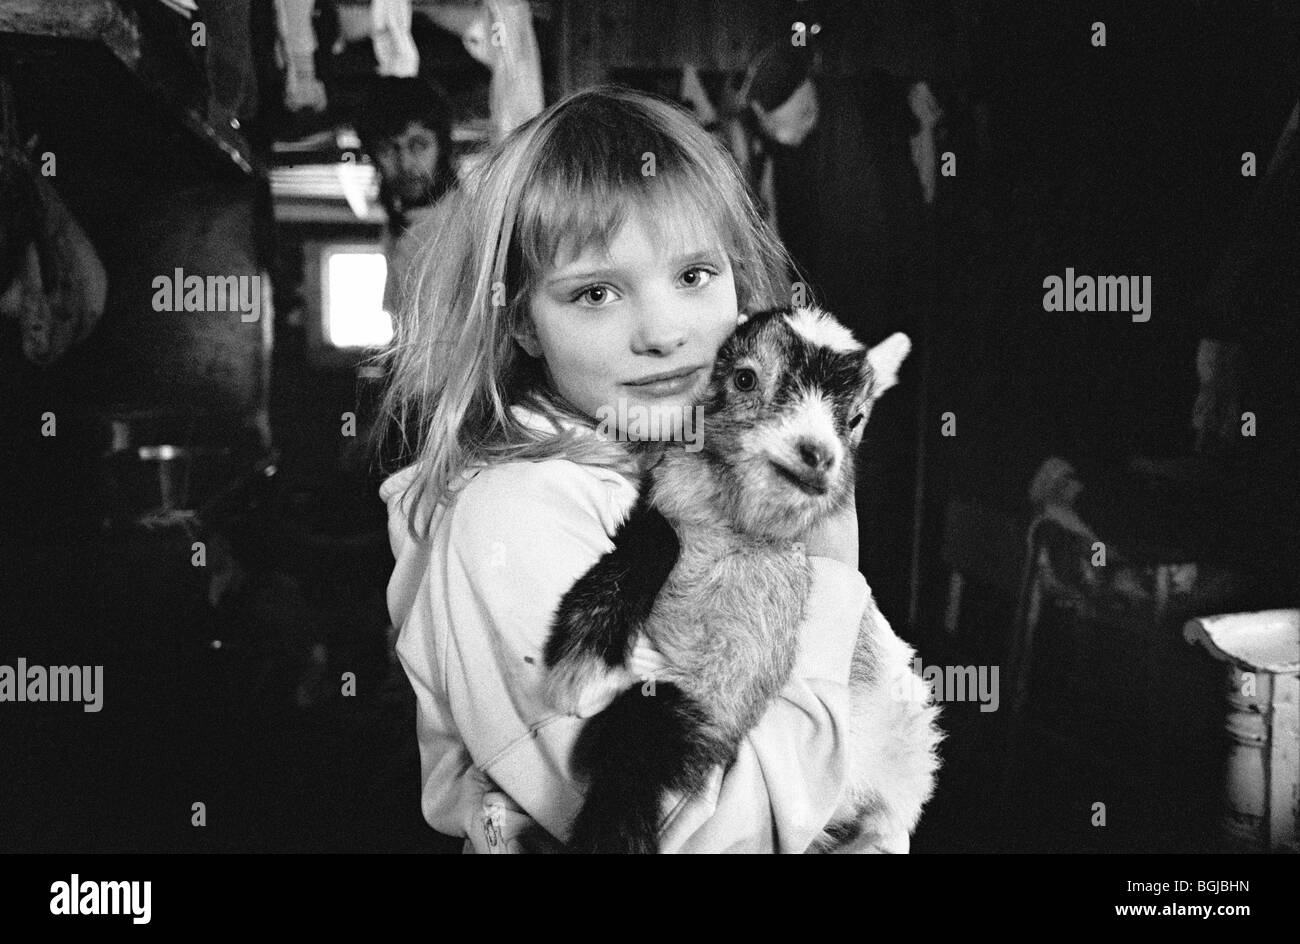 Young girl with baby goat at alternative lifestyle commune in Skogsnäs, Northern Sweden. - Stock Image